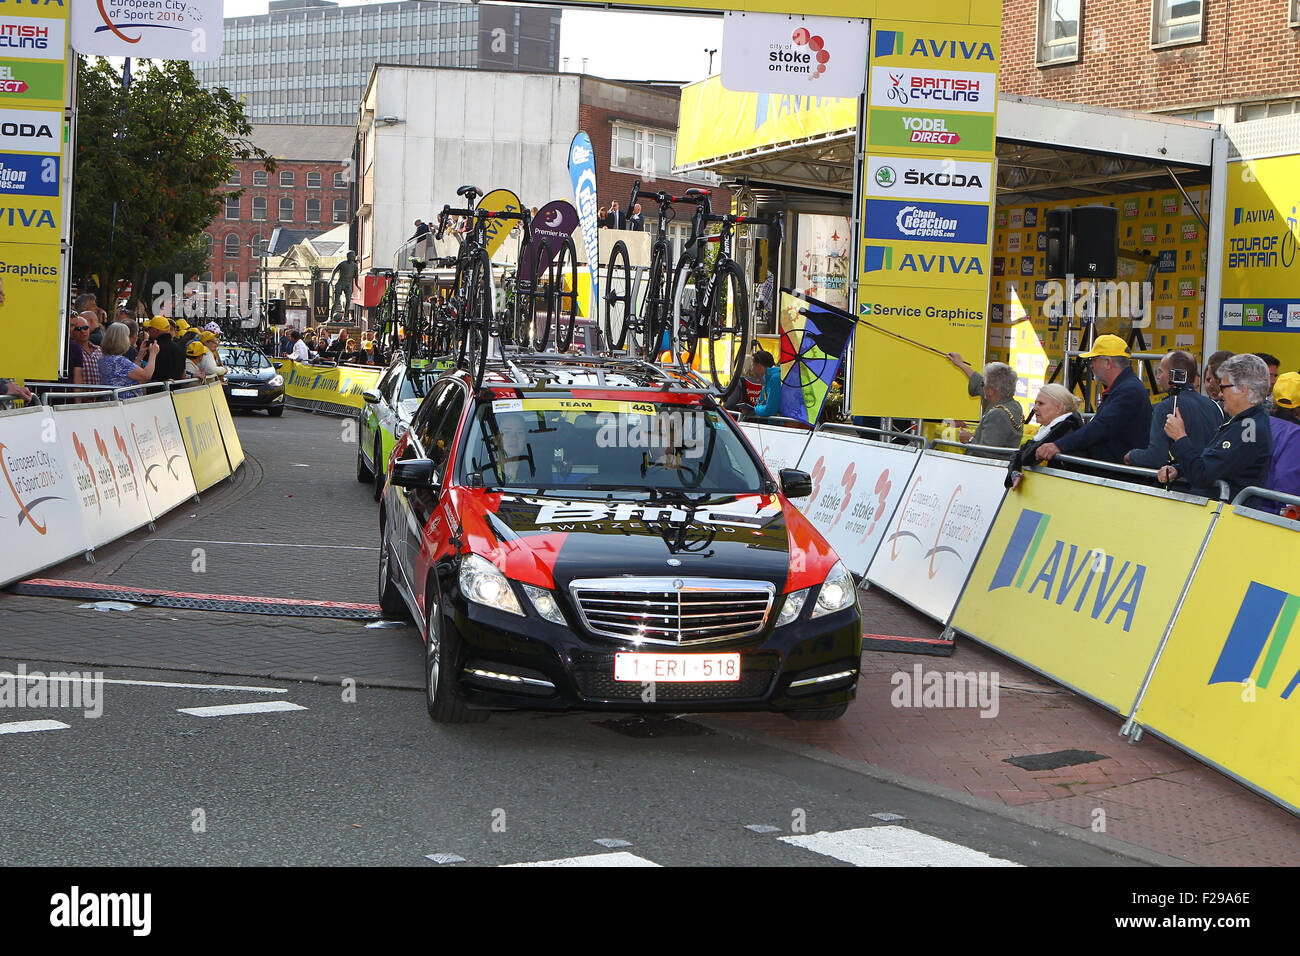 bmc team support car photos bmc team support car images alamy. Black Bedroom Furniture Sets. Home Design Ideas